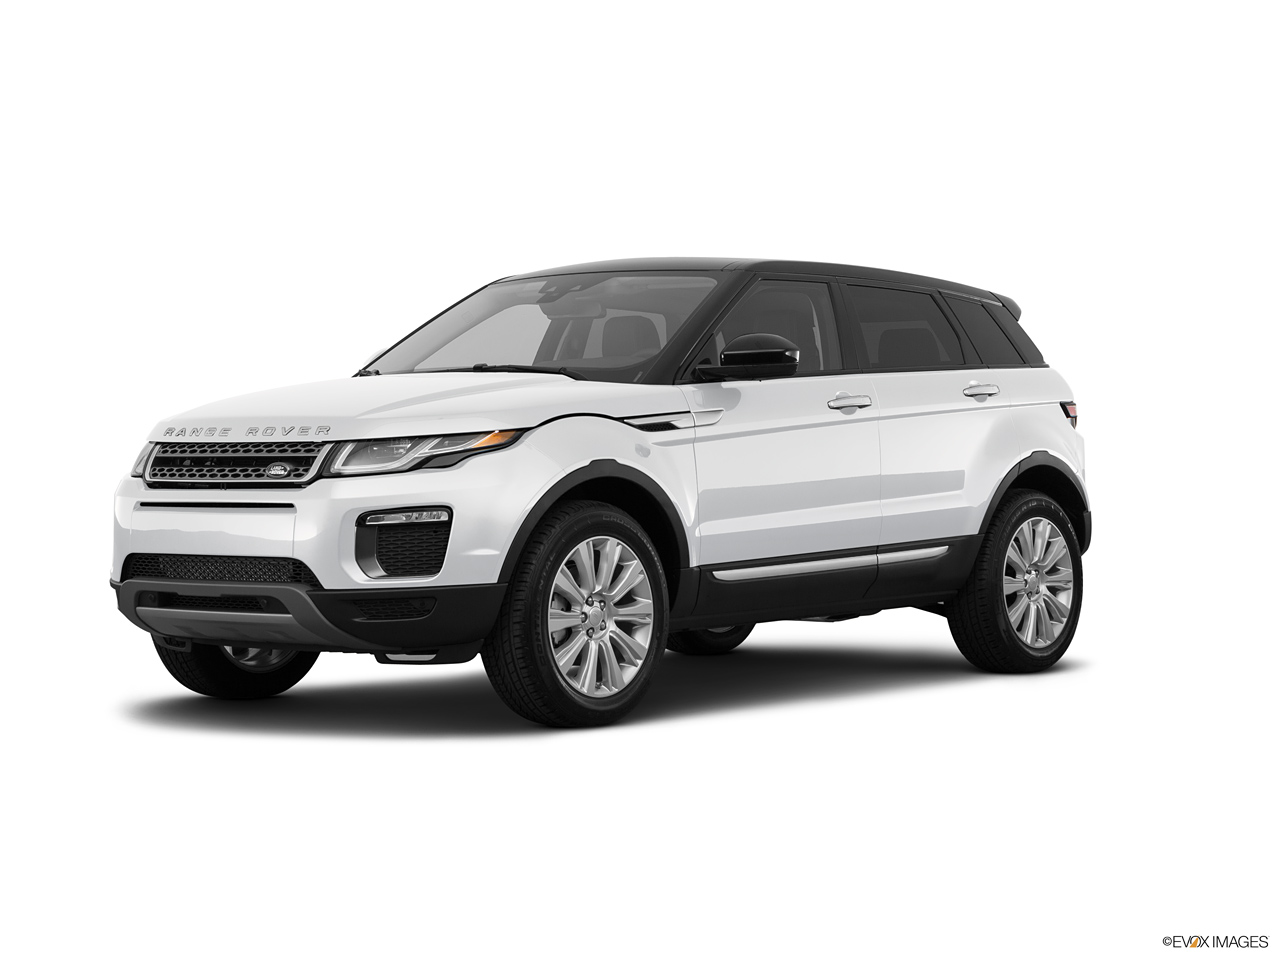 car pictures list for land rover range rover evoque 2017 2 0l si4 autobiography awd oman. Black Bedroom Furniture Sets. Home Design Ideas